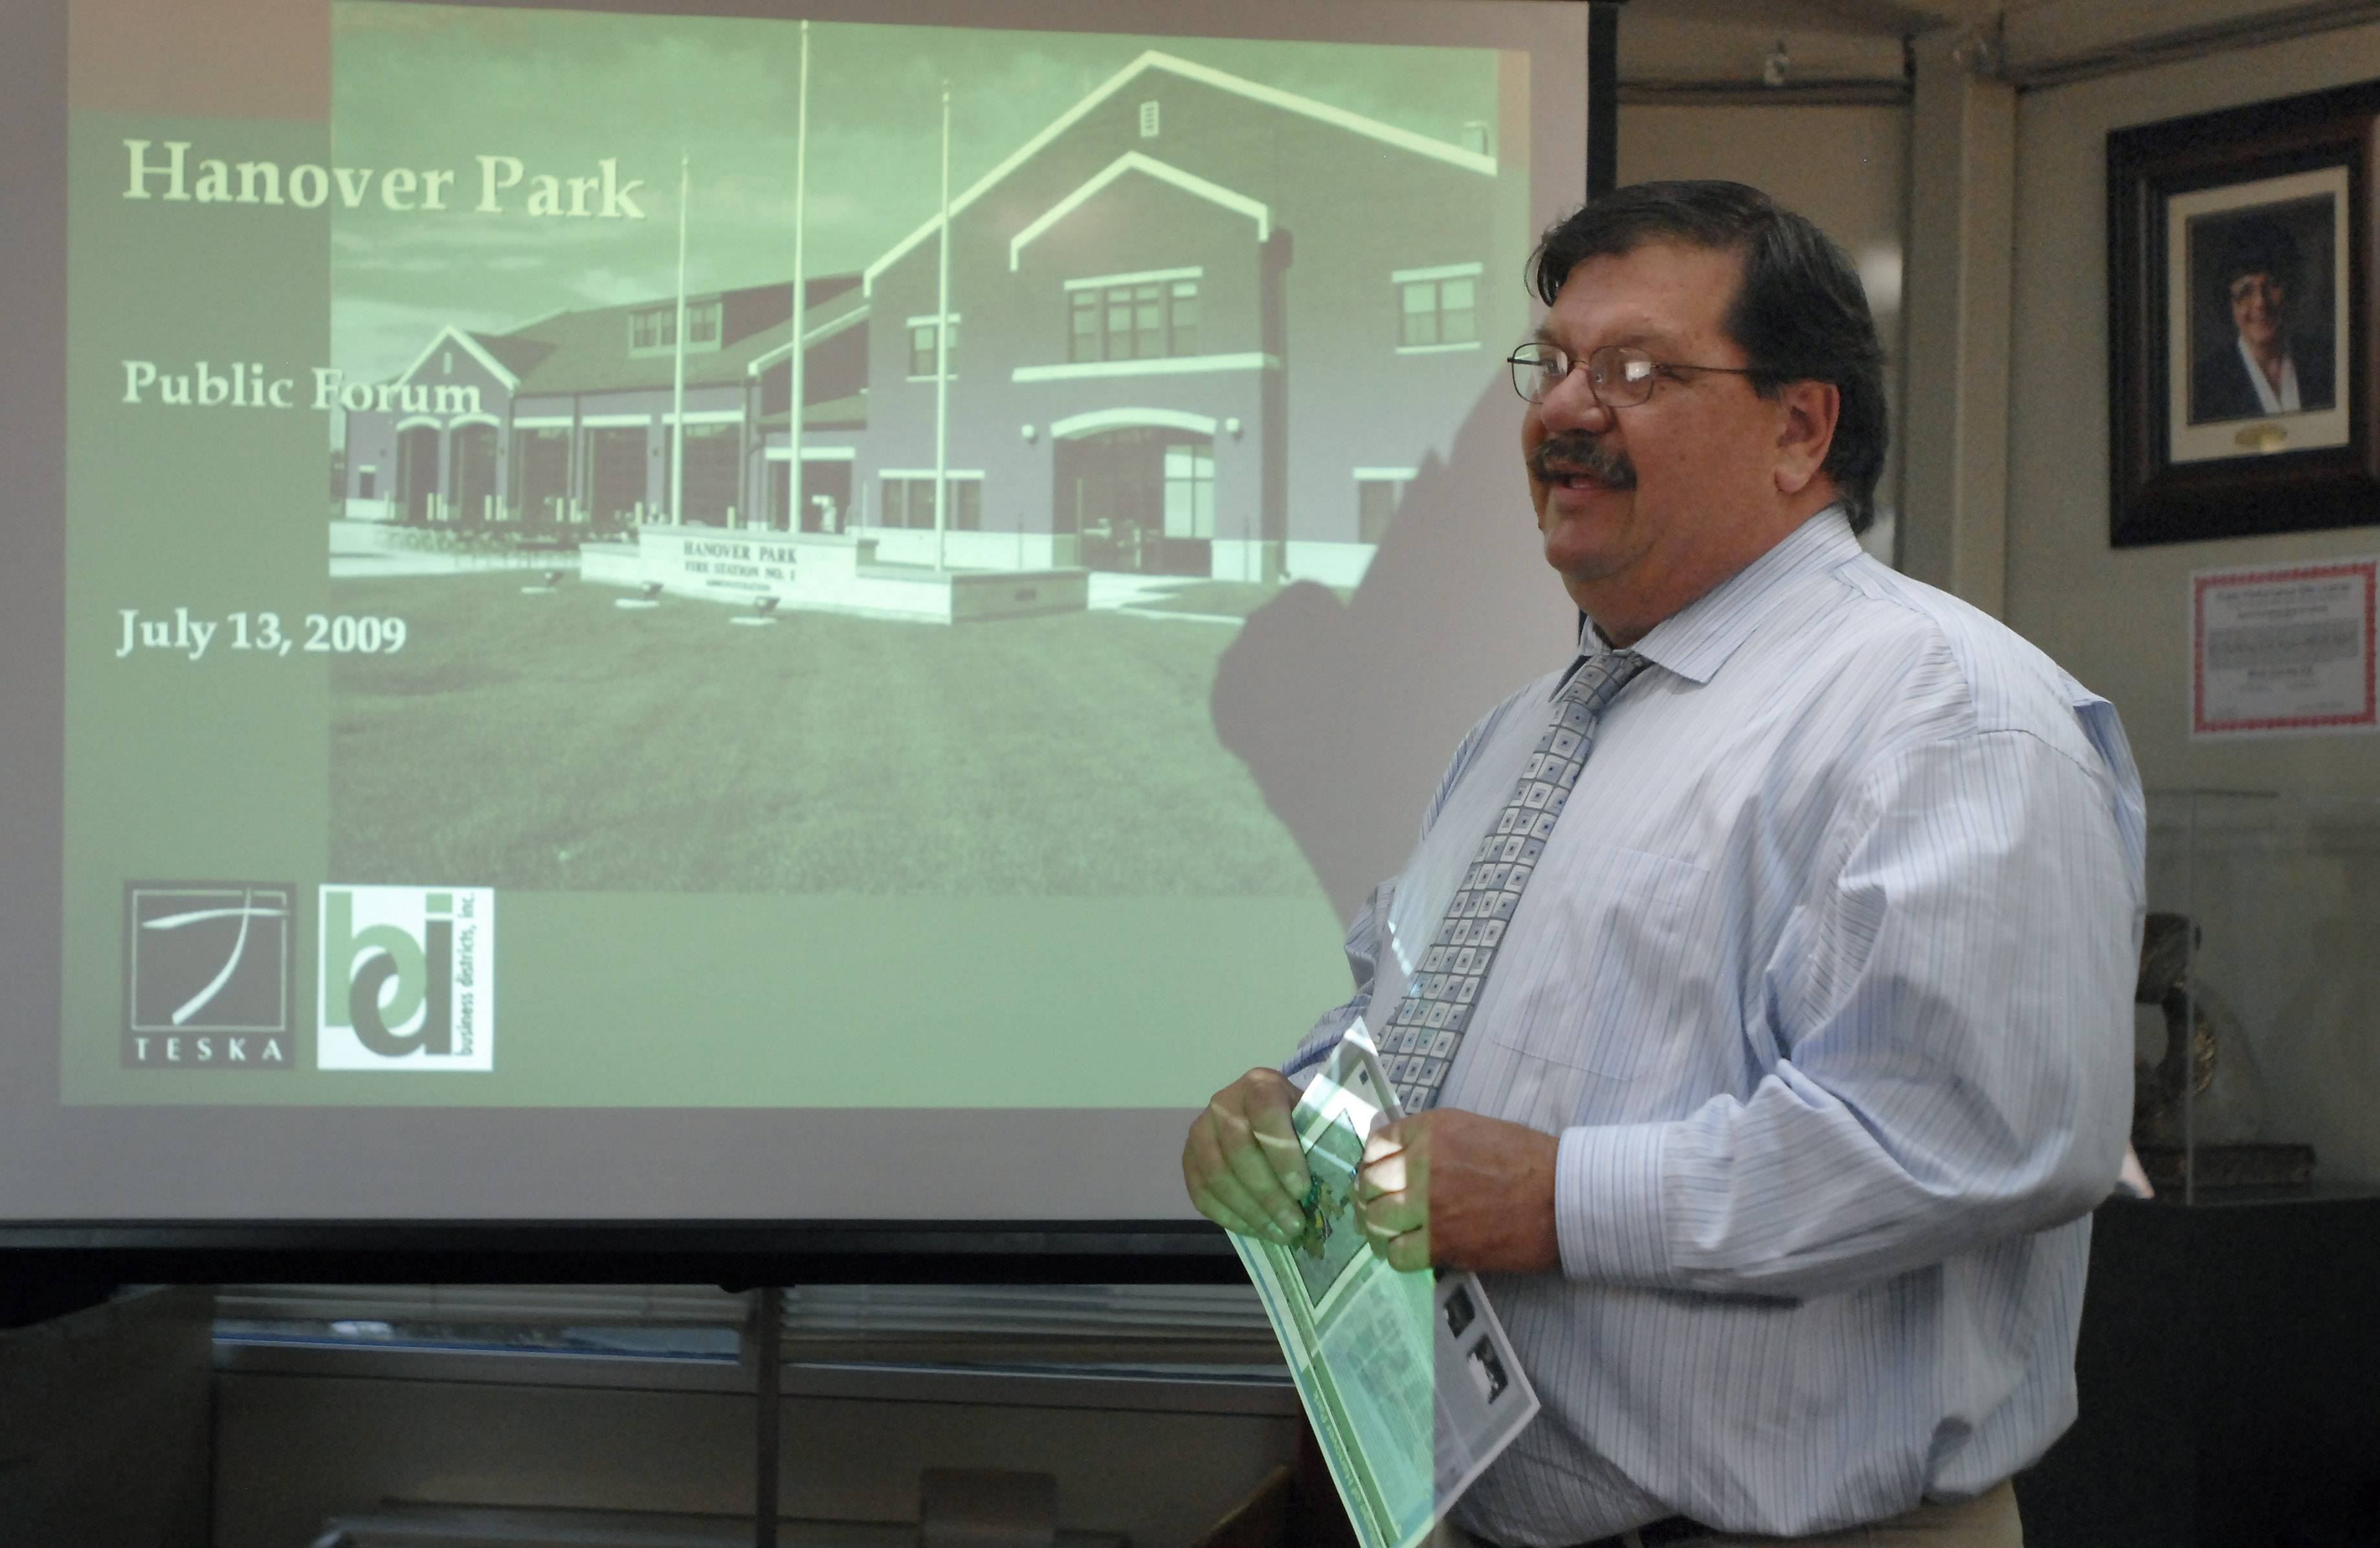 Hanover Park mayor rips county immigration policy